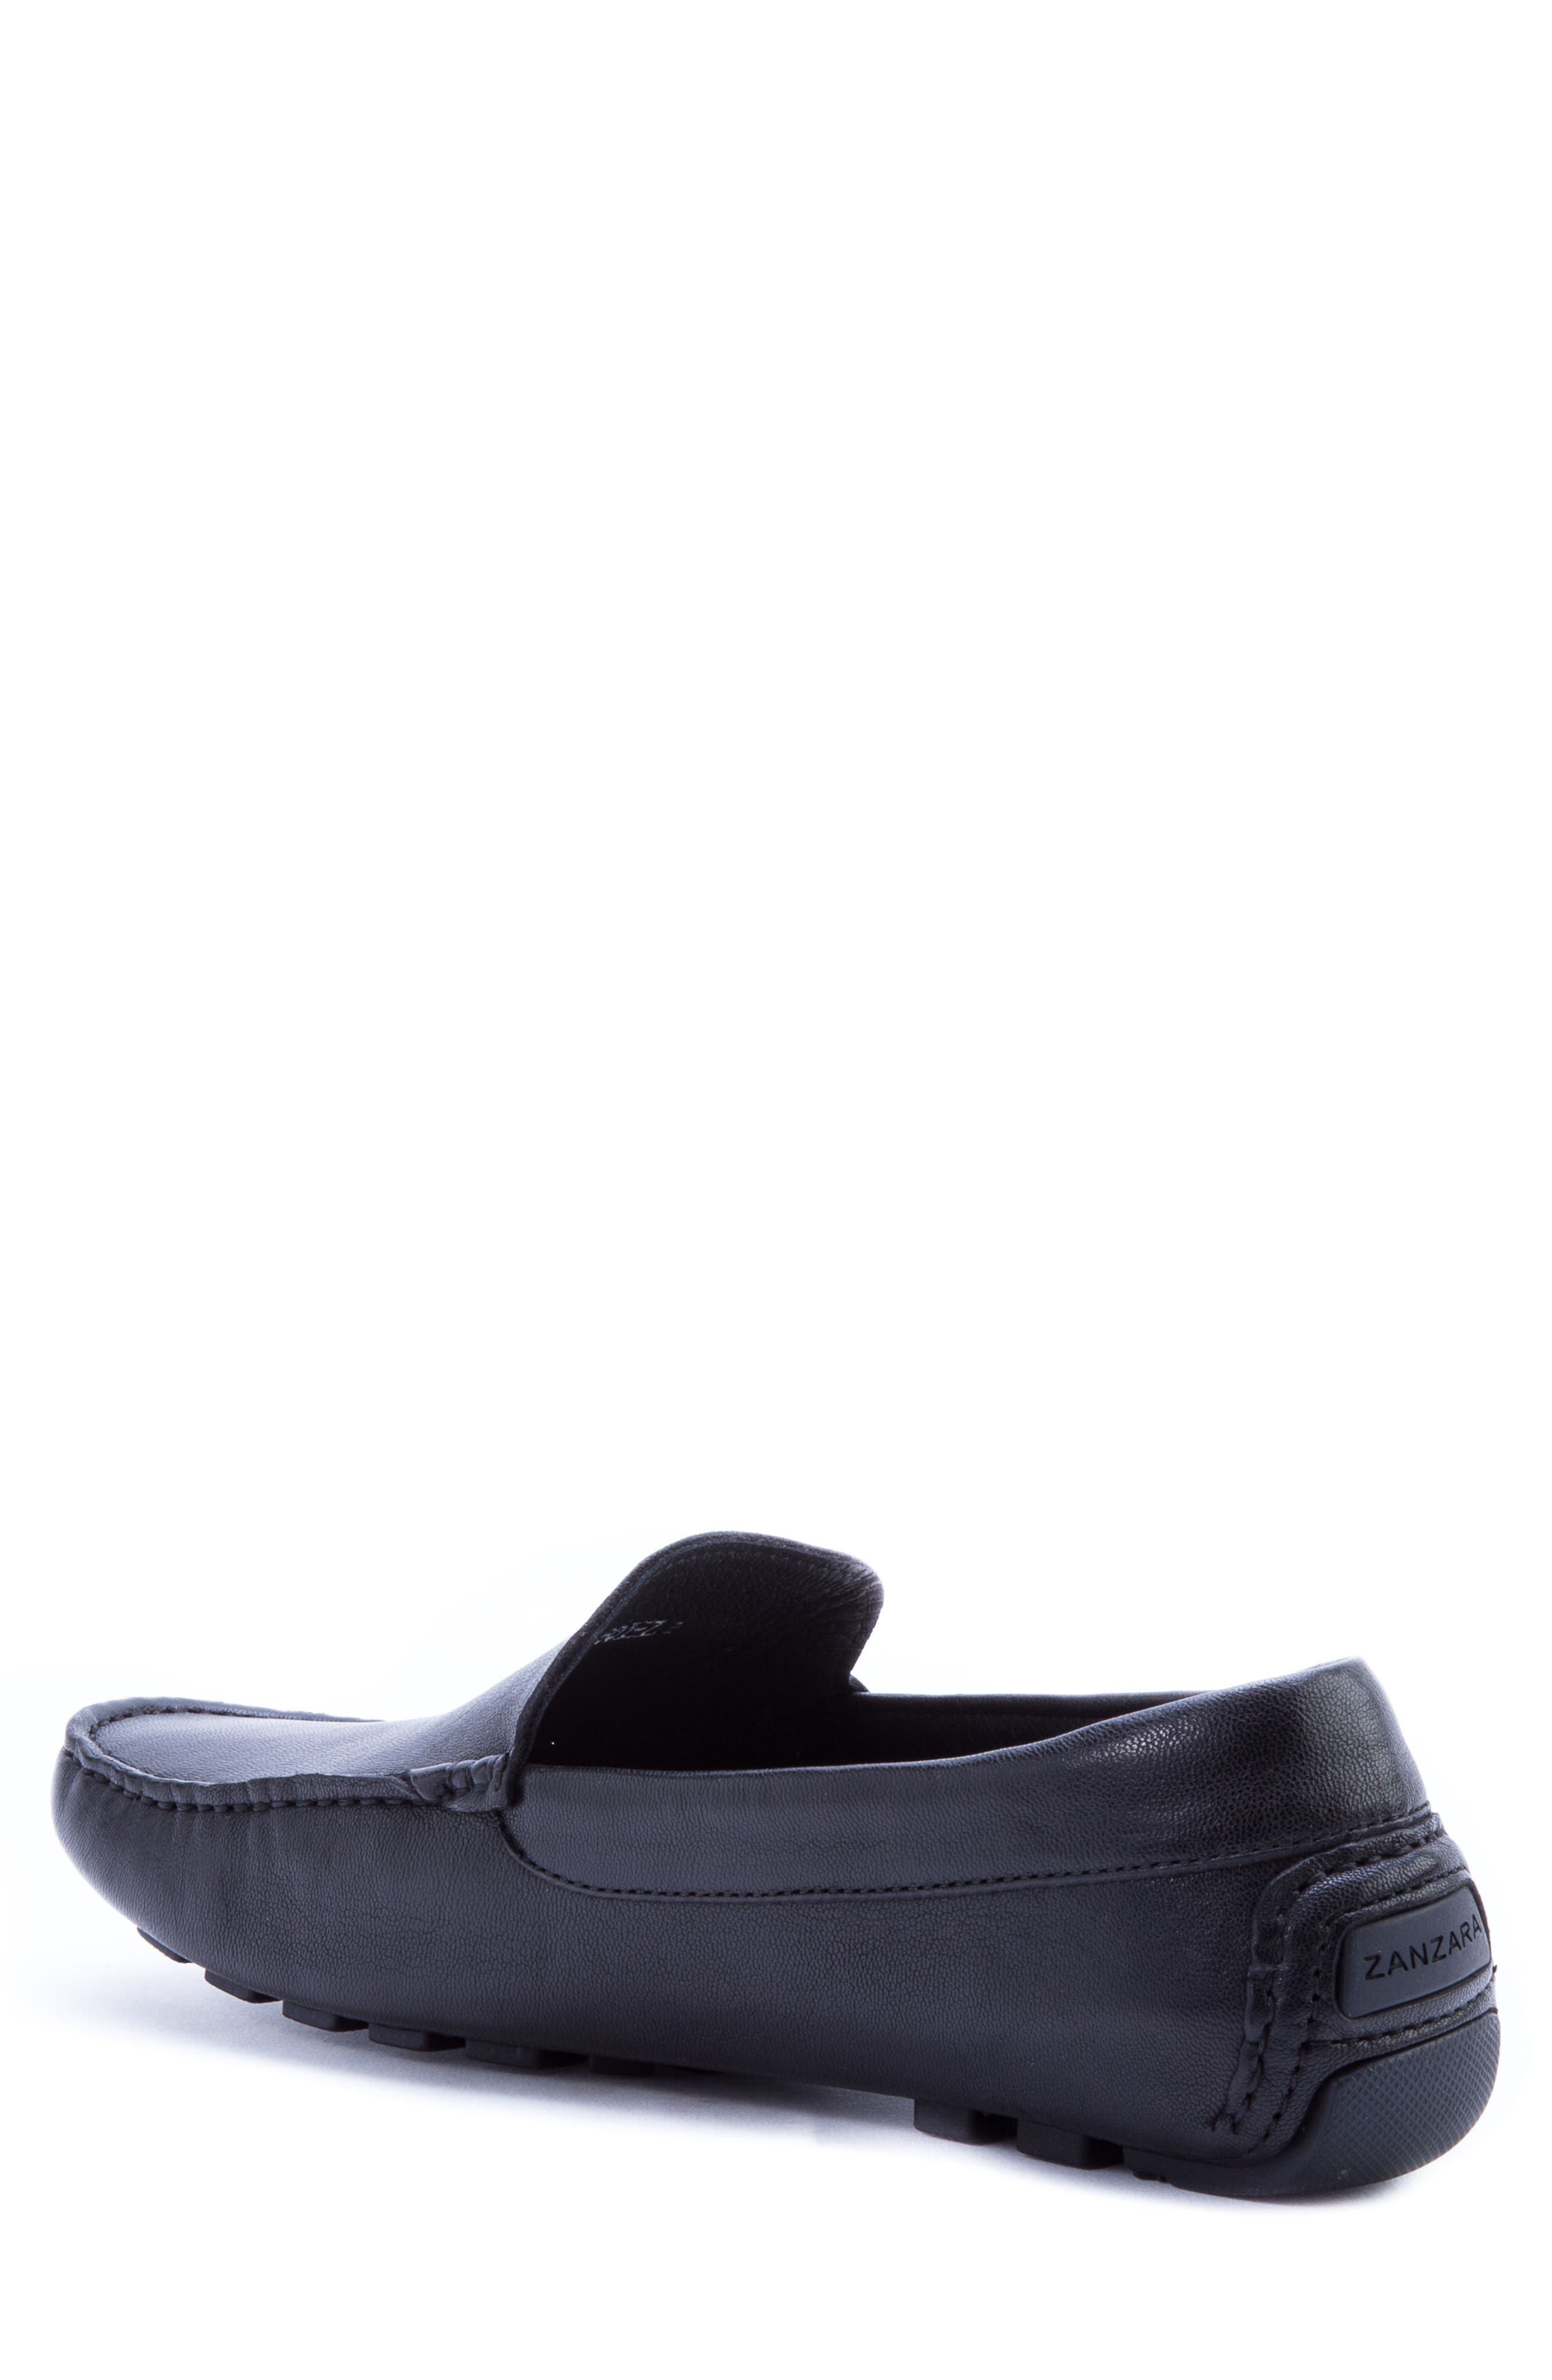 Picasso 3 Moc Toe Driving Loafer,                             Alternate thumbnail 2, color,                             BLACK LEATHER